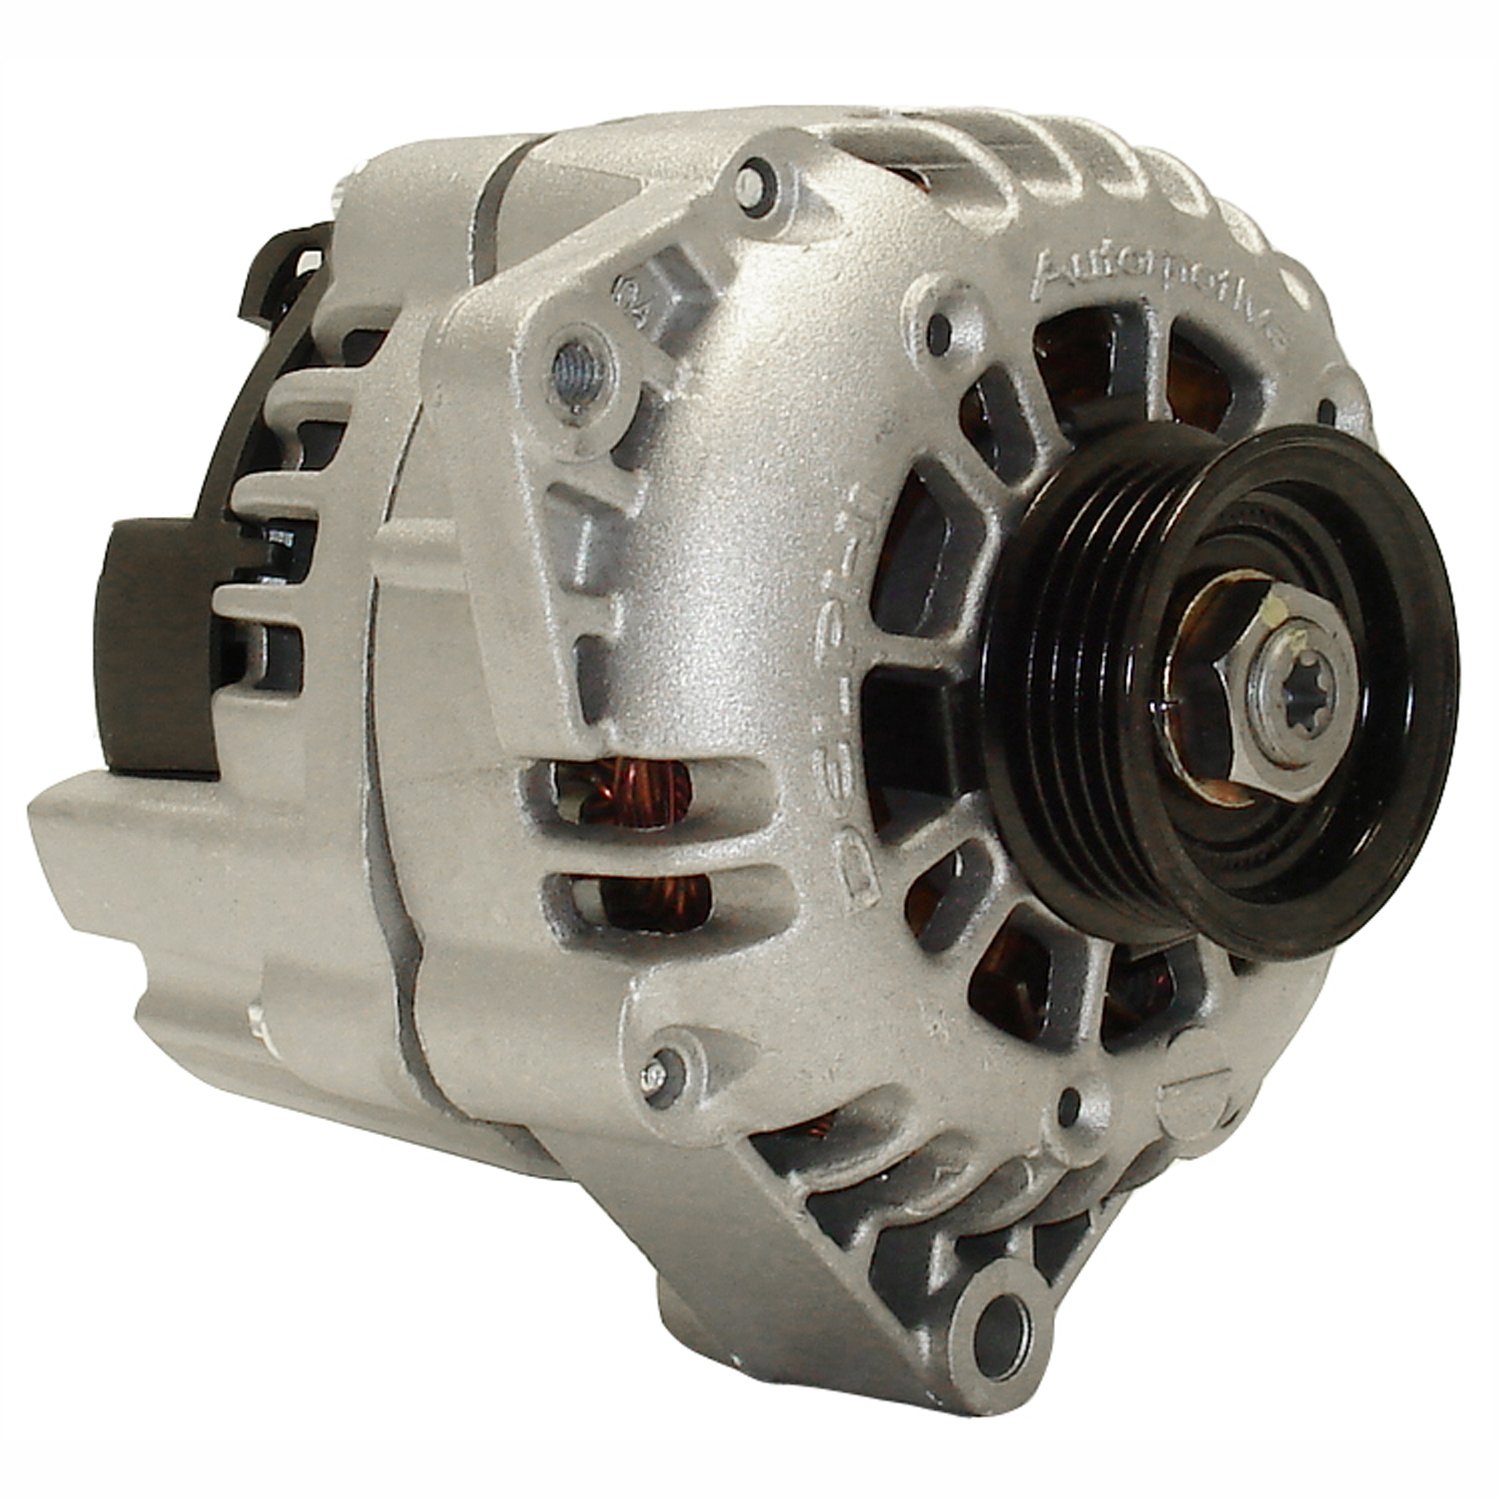 Amazon.com: ACDelco 334-2518A Professional Alternator, Remanufactured:  Automotive